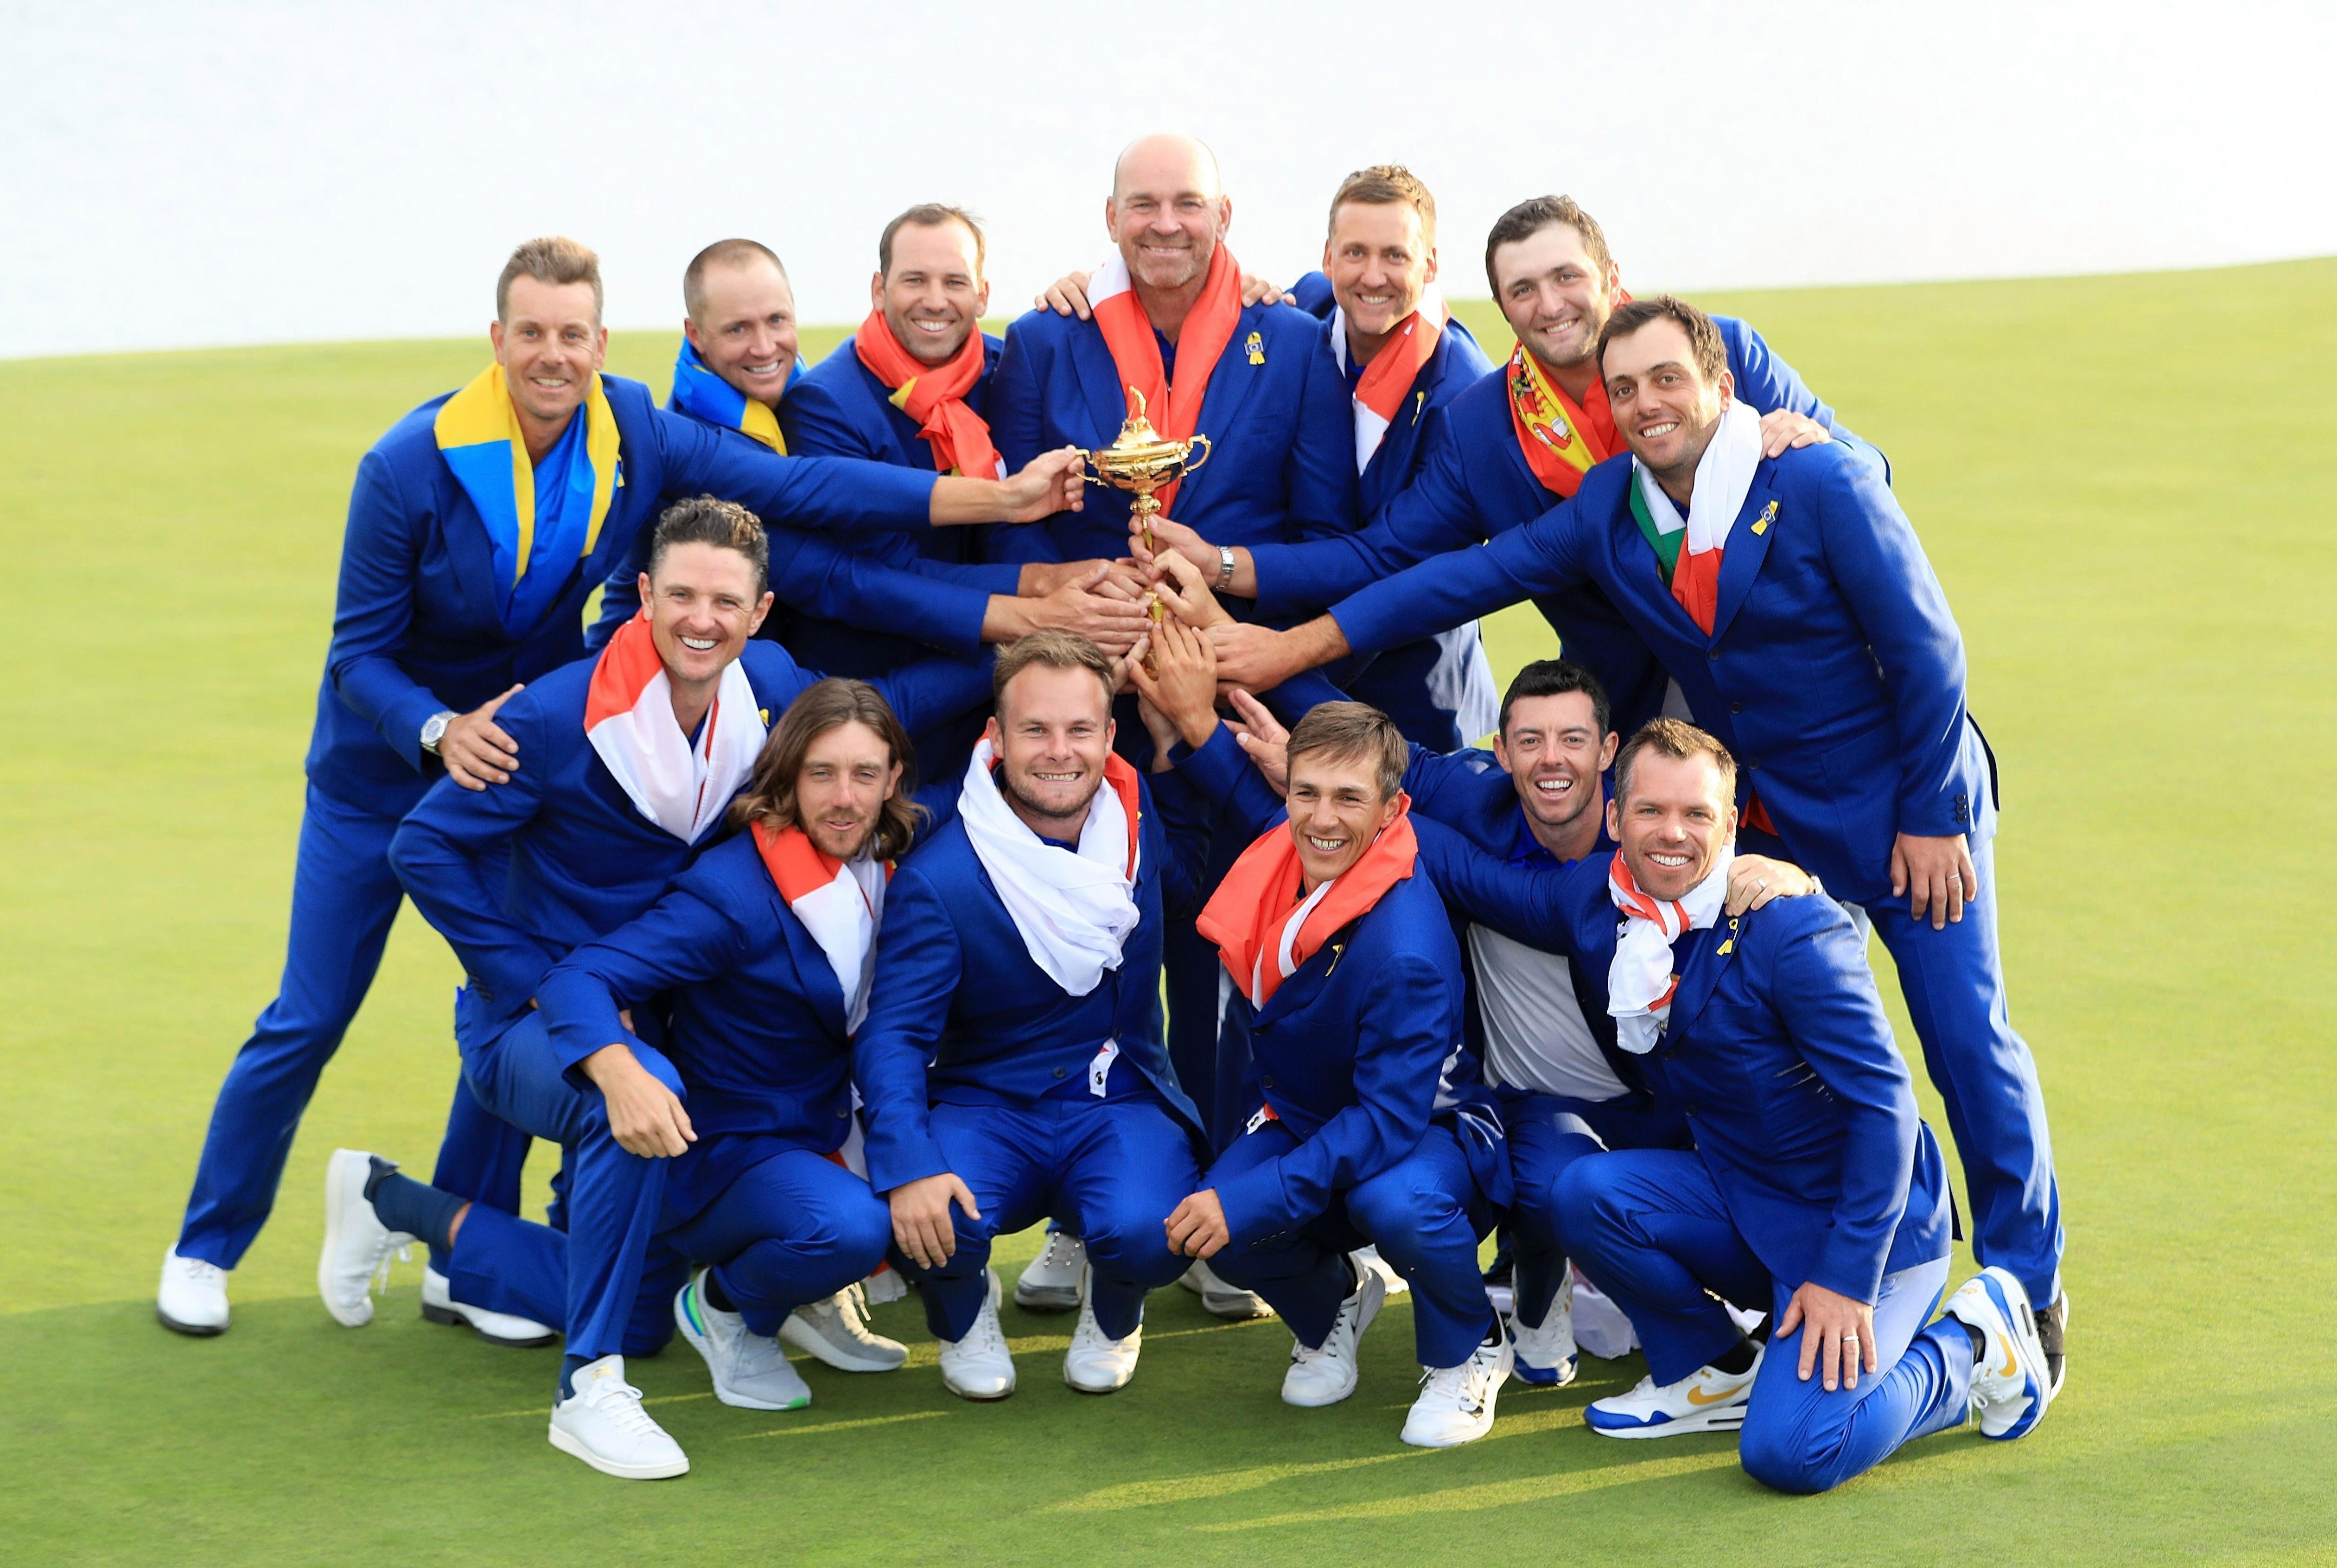 Europe celebrate with the Ryder Cup after beating USA